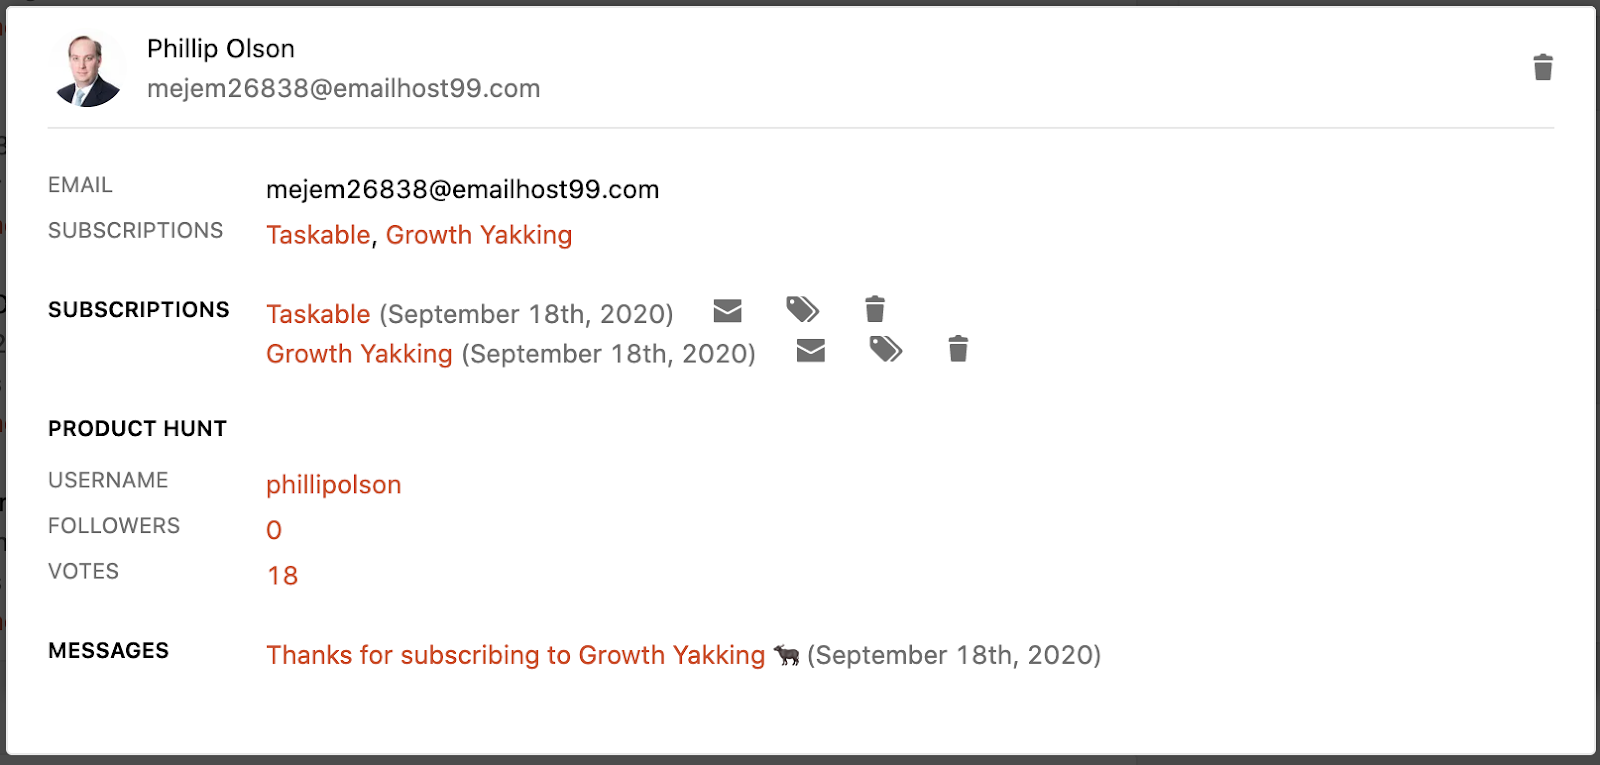 Product Hunt Ship subscribers are often spammy